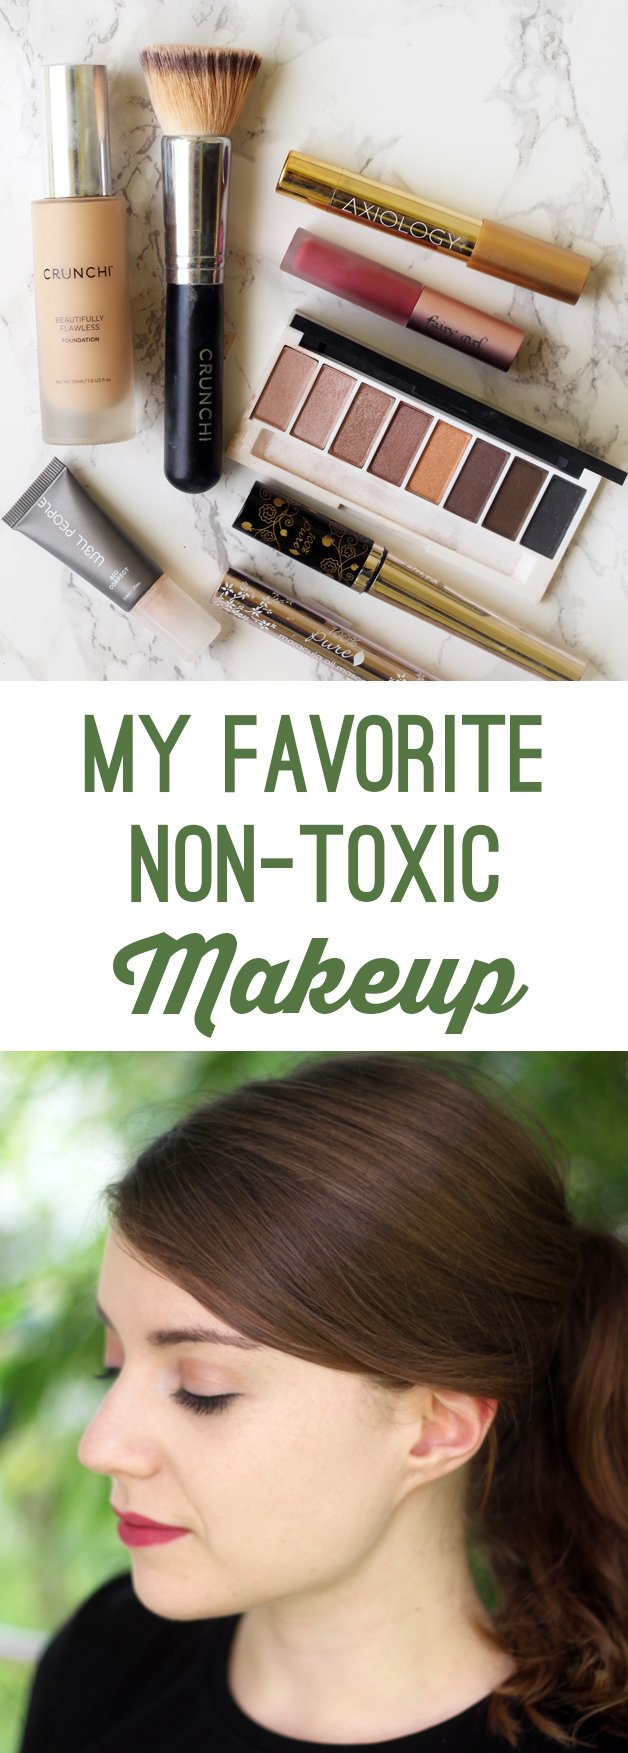 My Favorite Non- Toxic Makeup